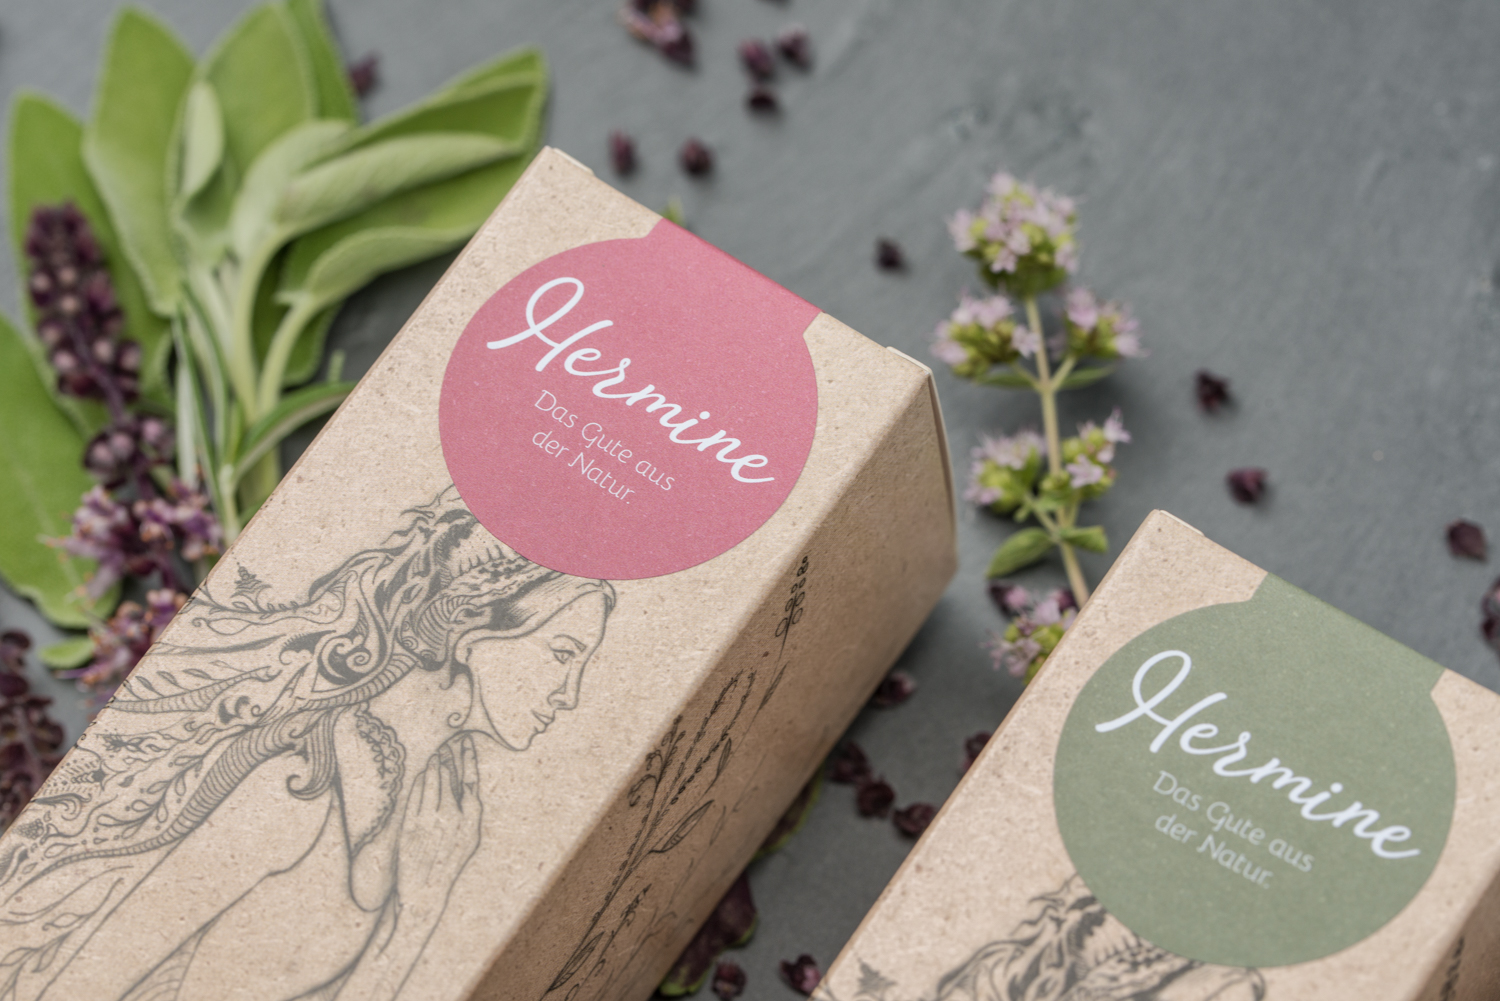 Hermine_packaging_mabai_2